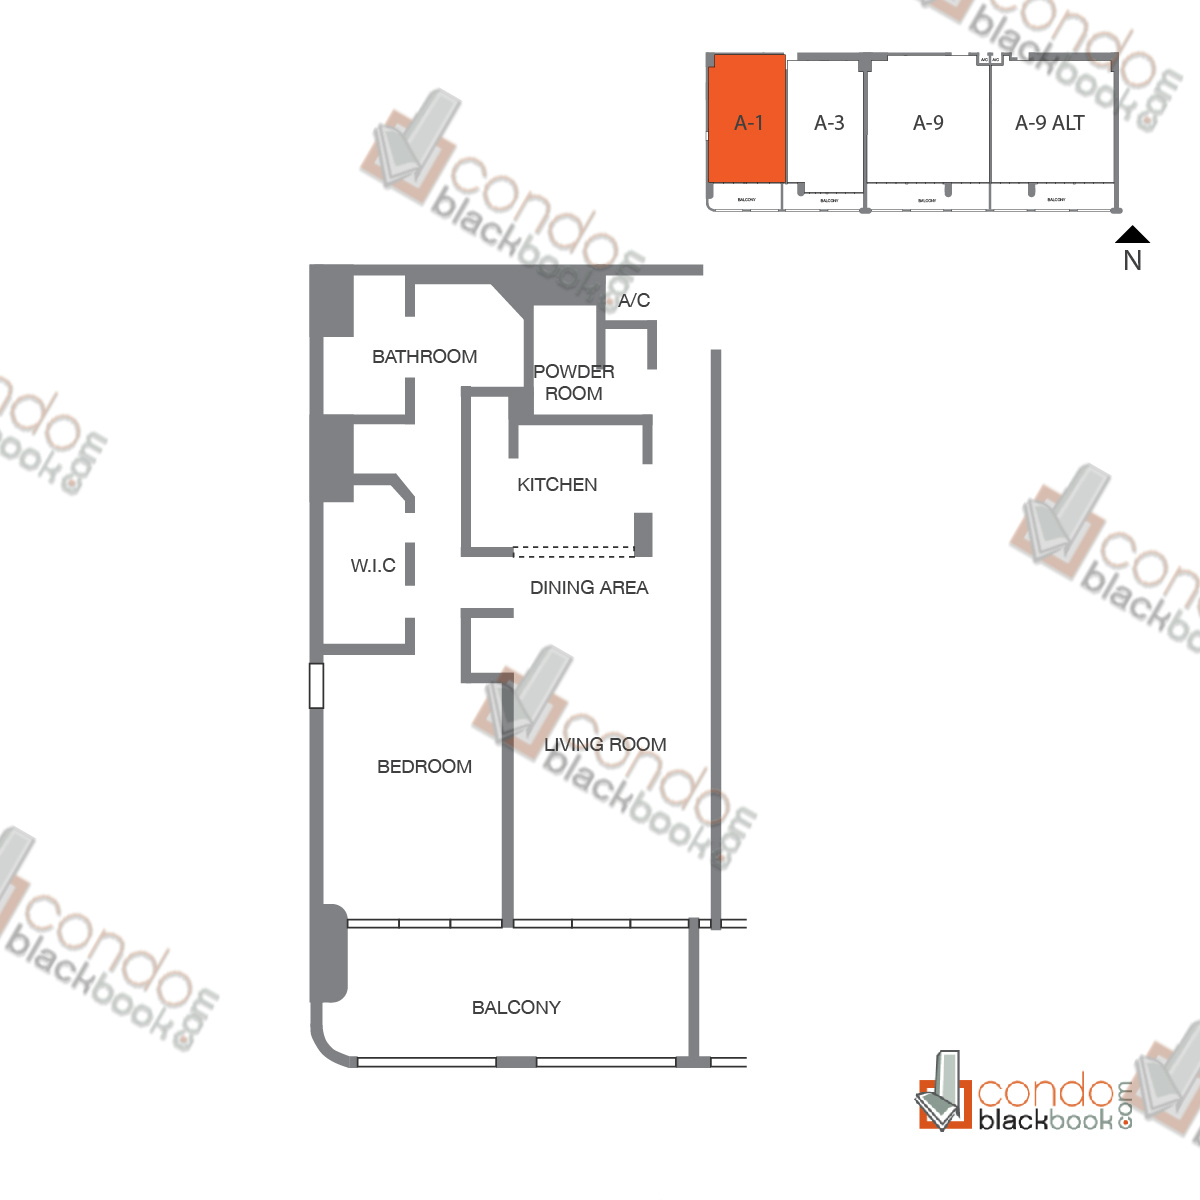 Floor plan for The Grand Arts & Entertainment District Miami, model Unit 52, line A-1052 to A-4252, B-4152, C-4052, D-3952, 1/1.5 bedrooms, 985 sq ft